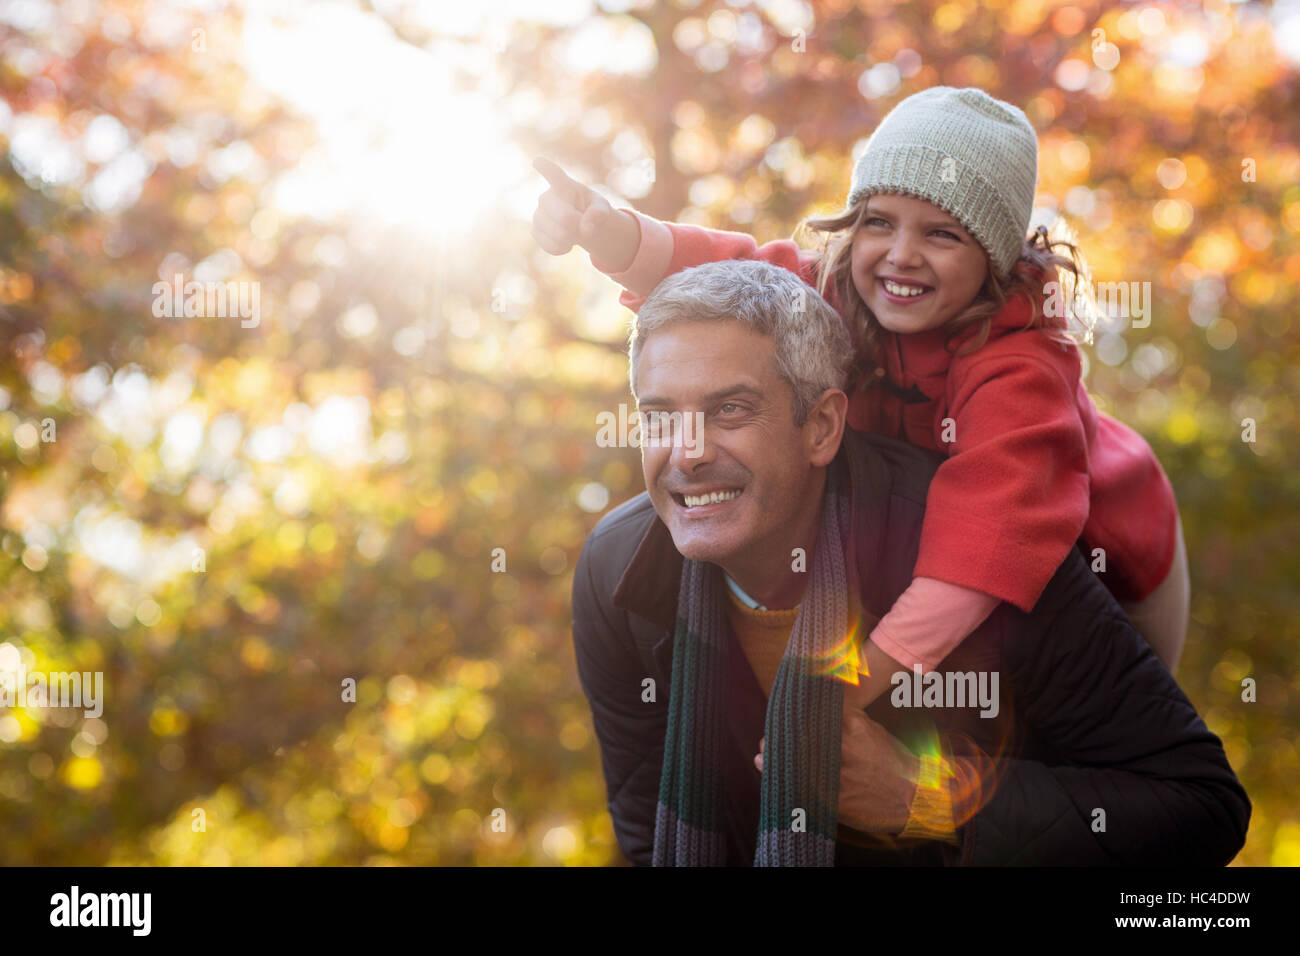 Father piggybacking daughter against autumn trees - Stock Image